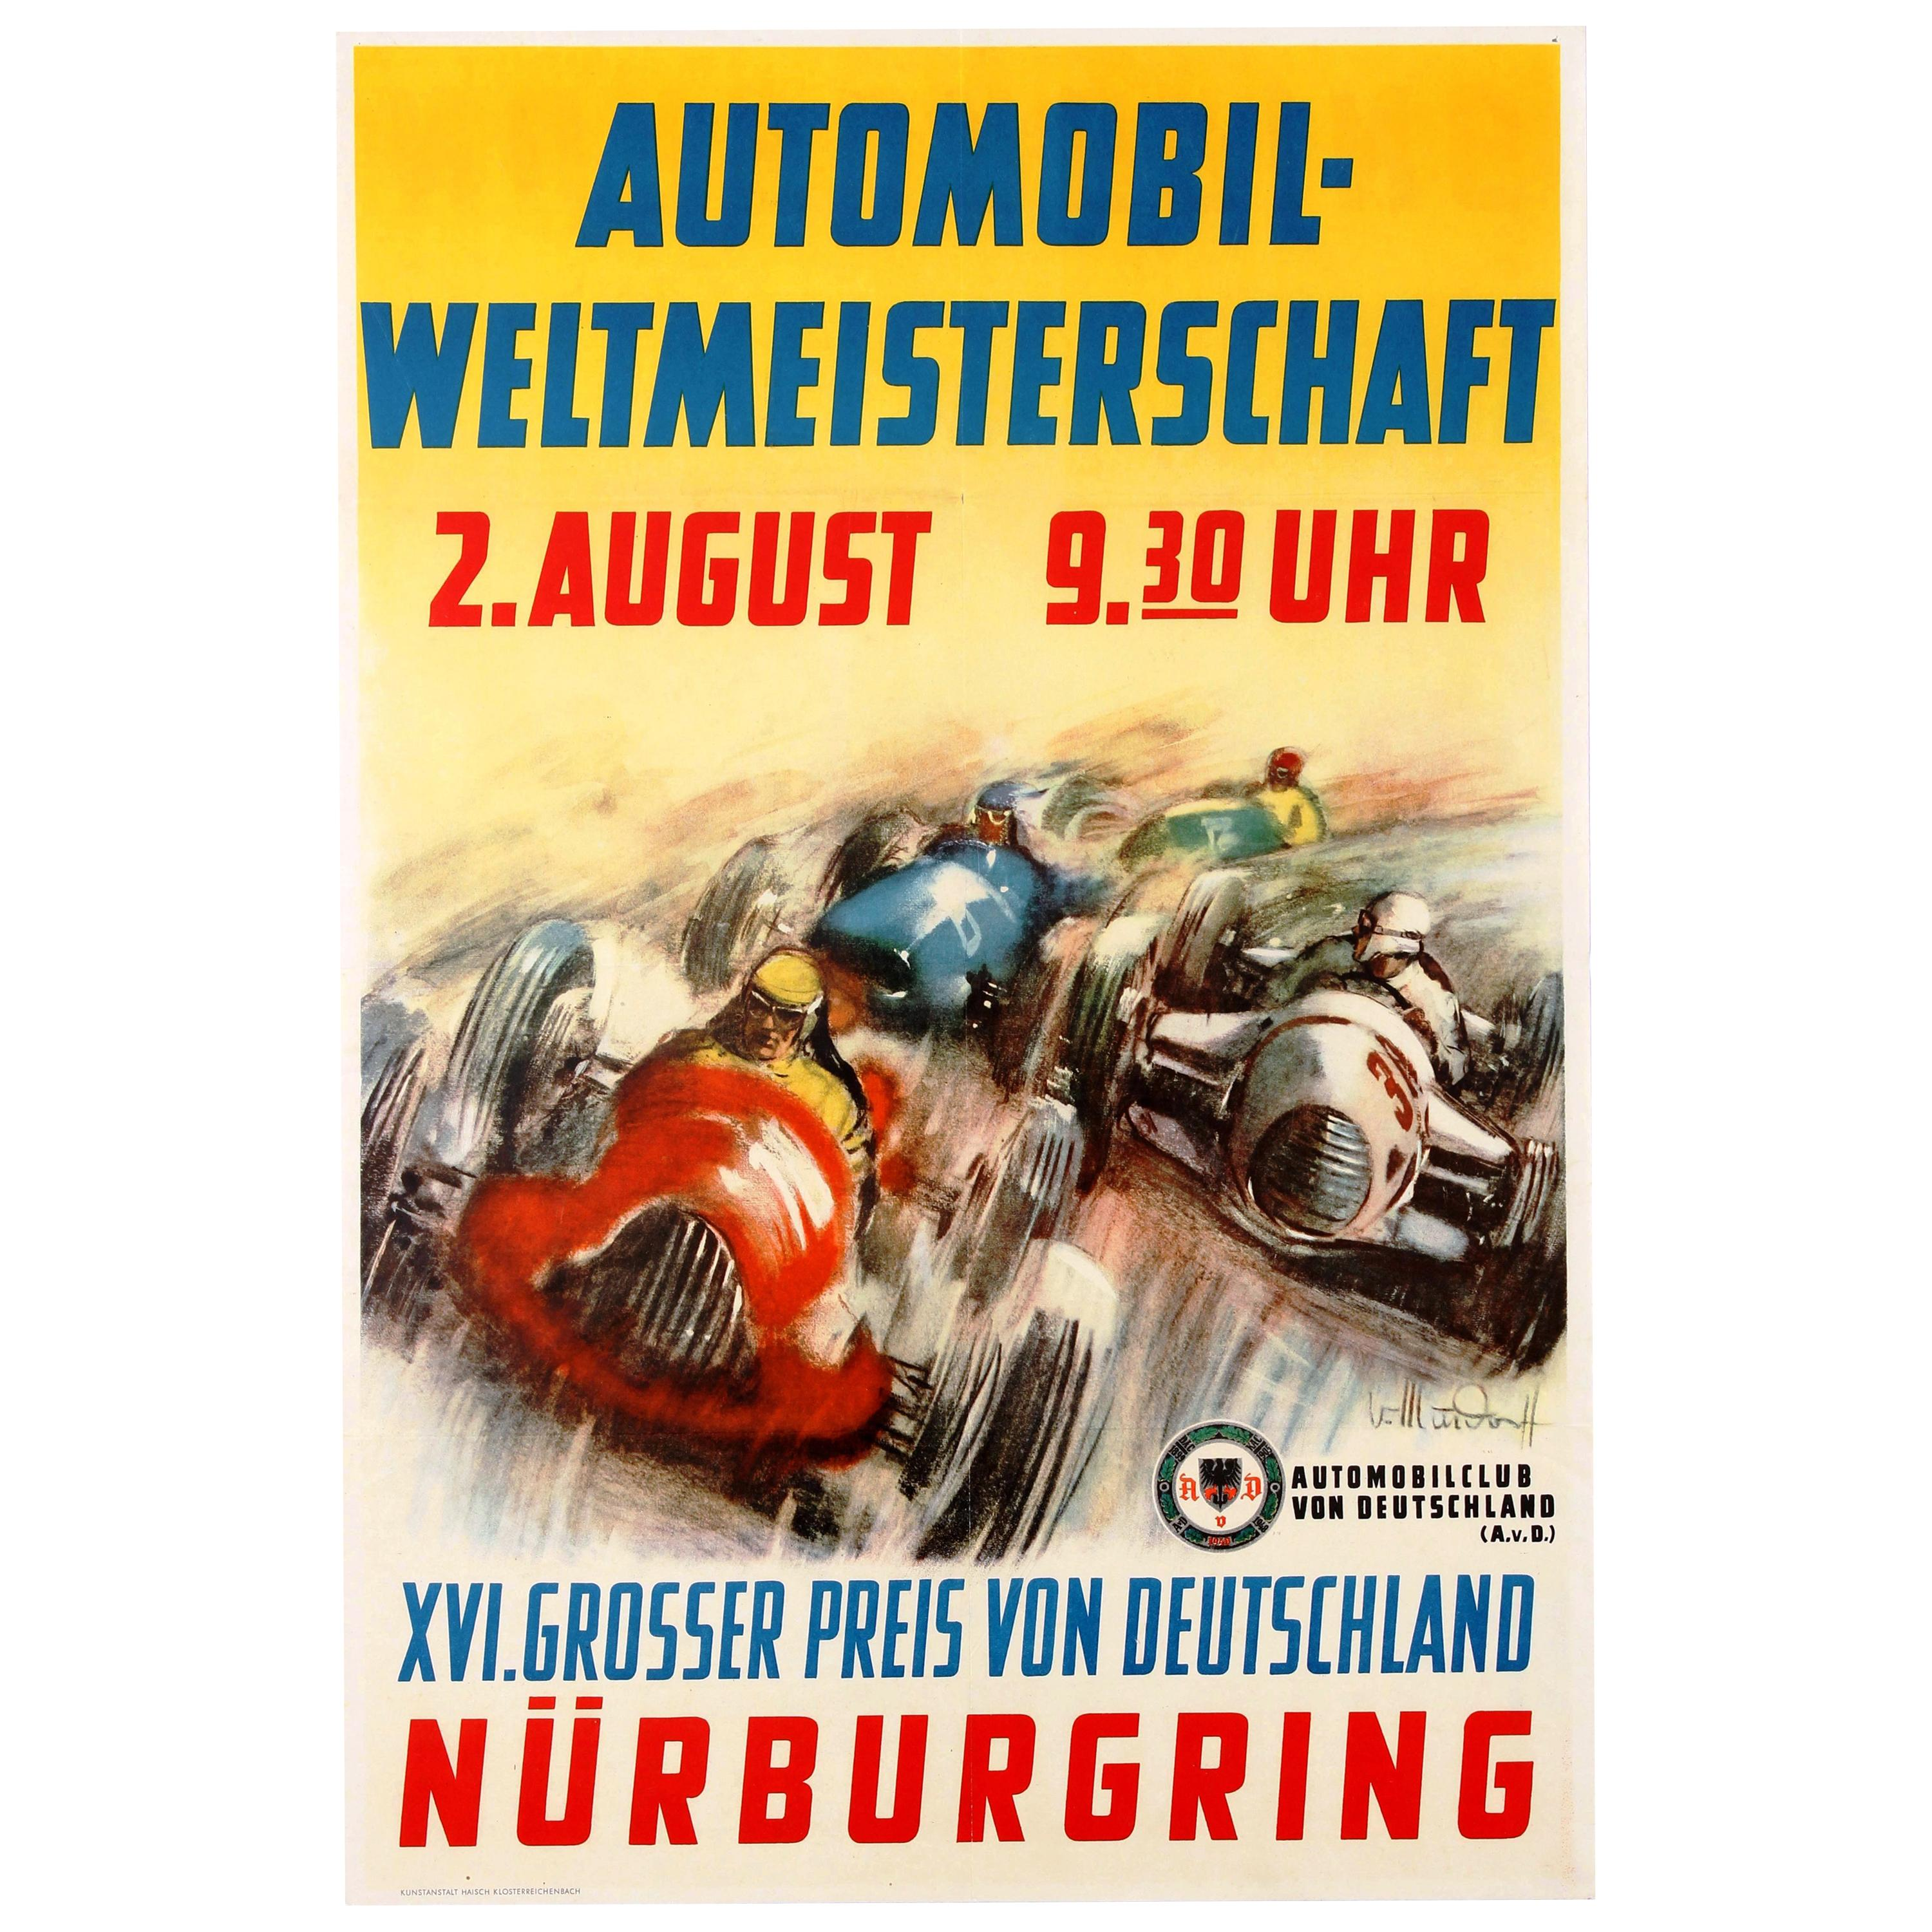 Reproduction 1955 Nurburgring Poster A2 A3 A4 Bike Racing Moto GP nordschleife